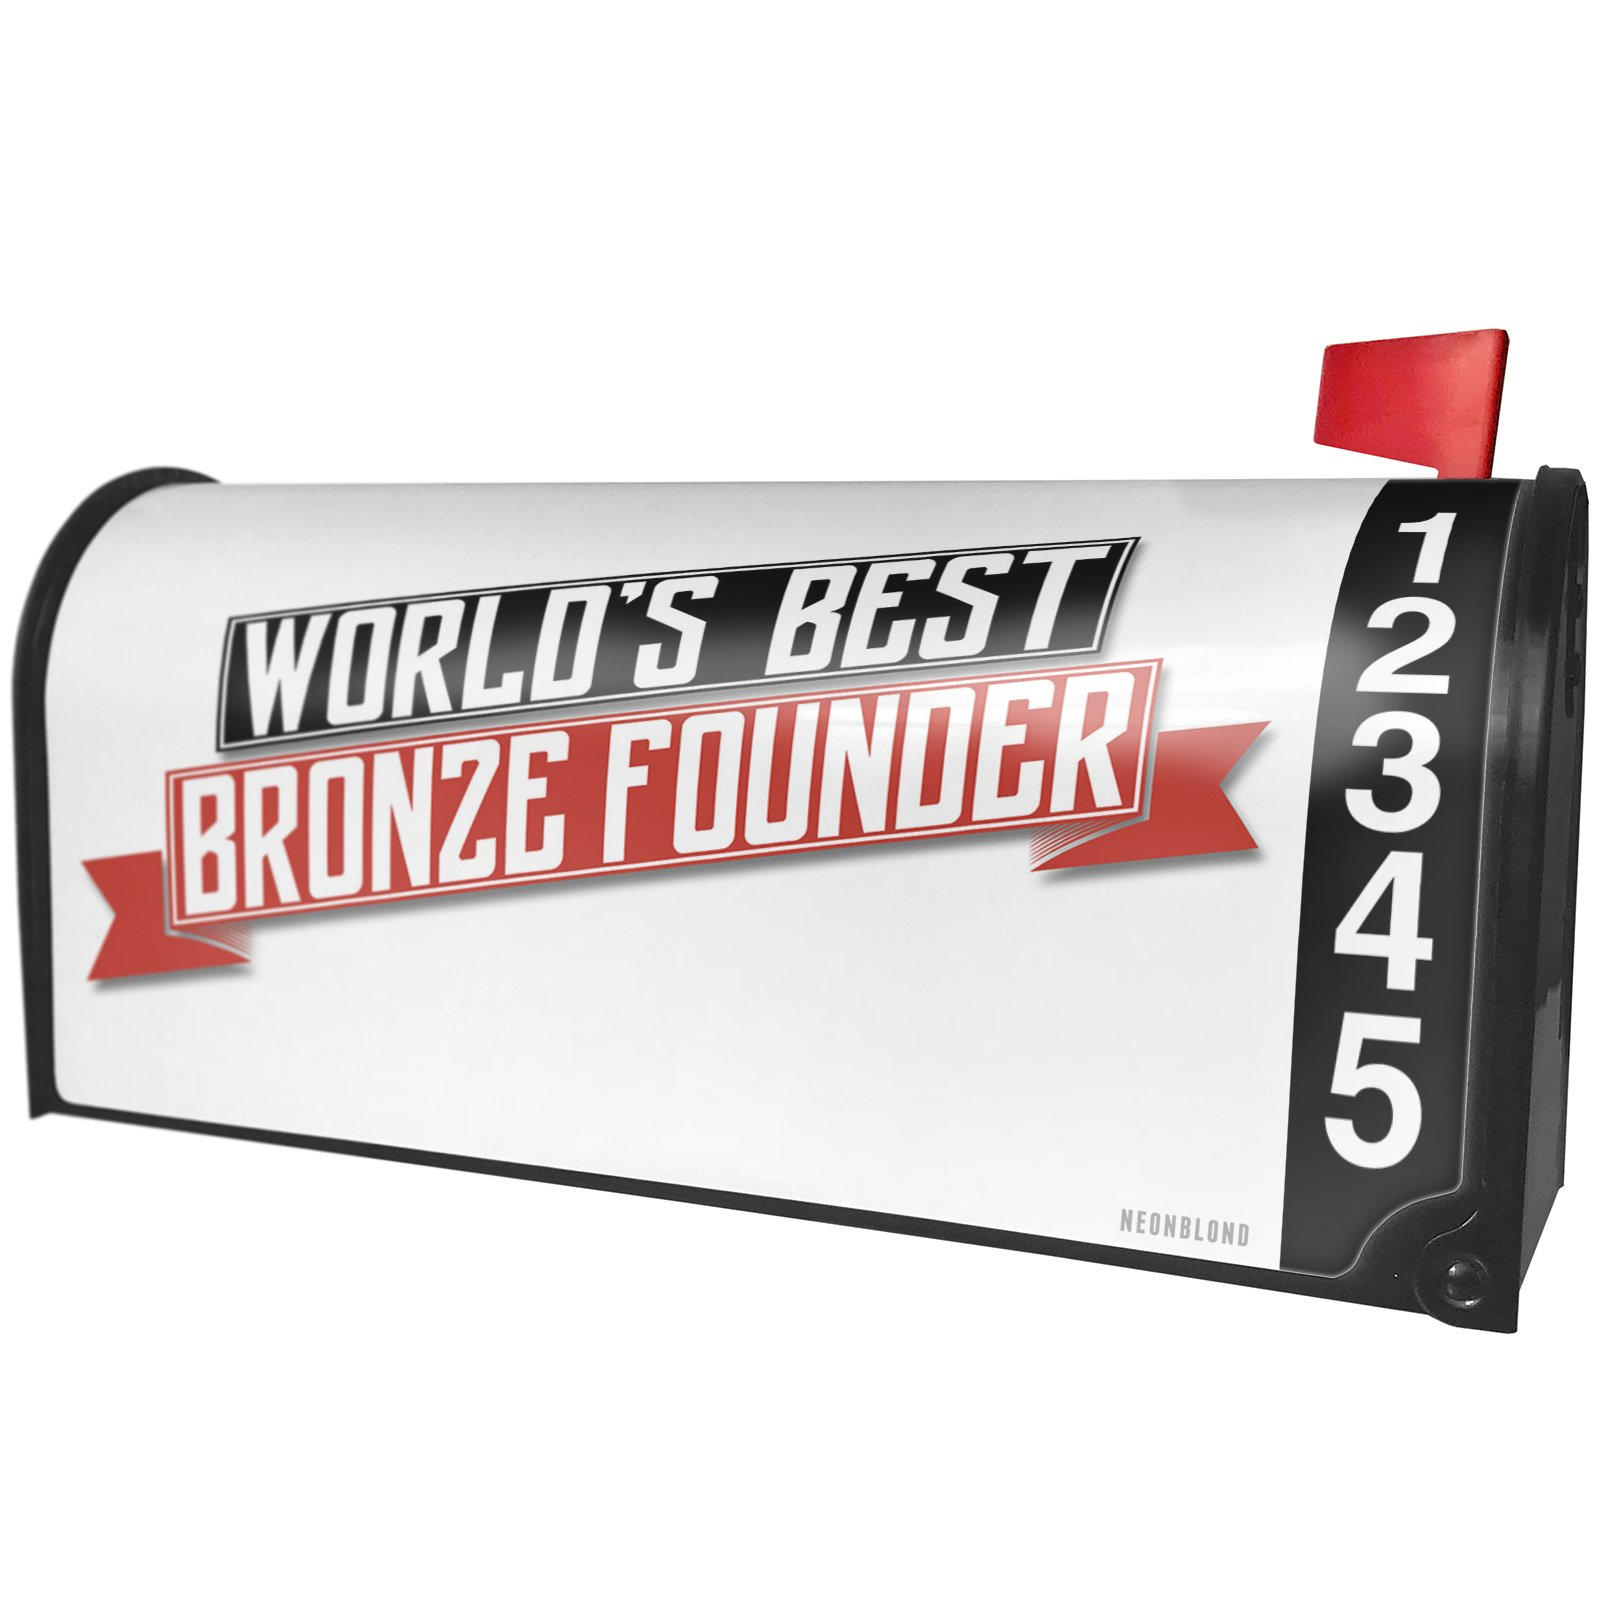 NEONBLOND Worlds Best Bronze Founder Magnetic Mailbox Cover Custom Numbers